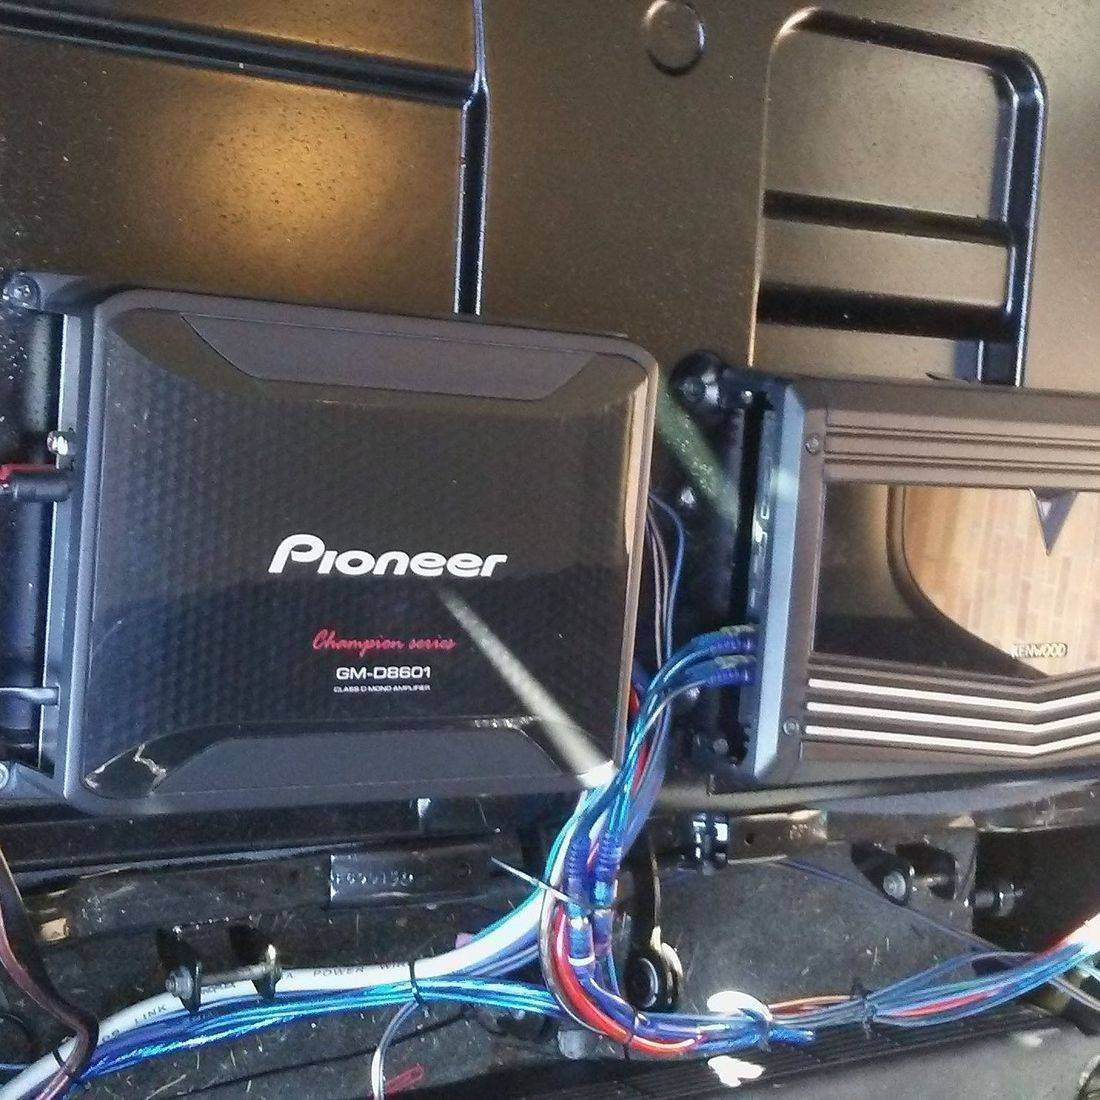 pioneer amp a&e customs installation